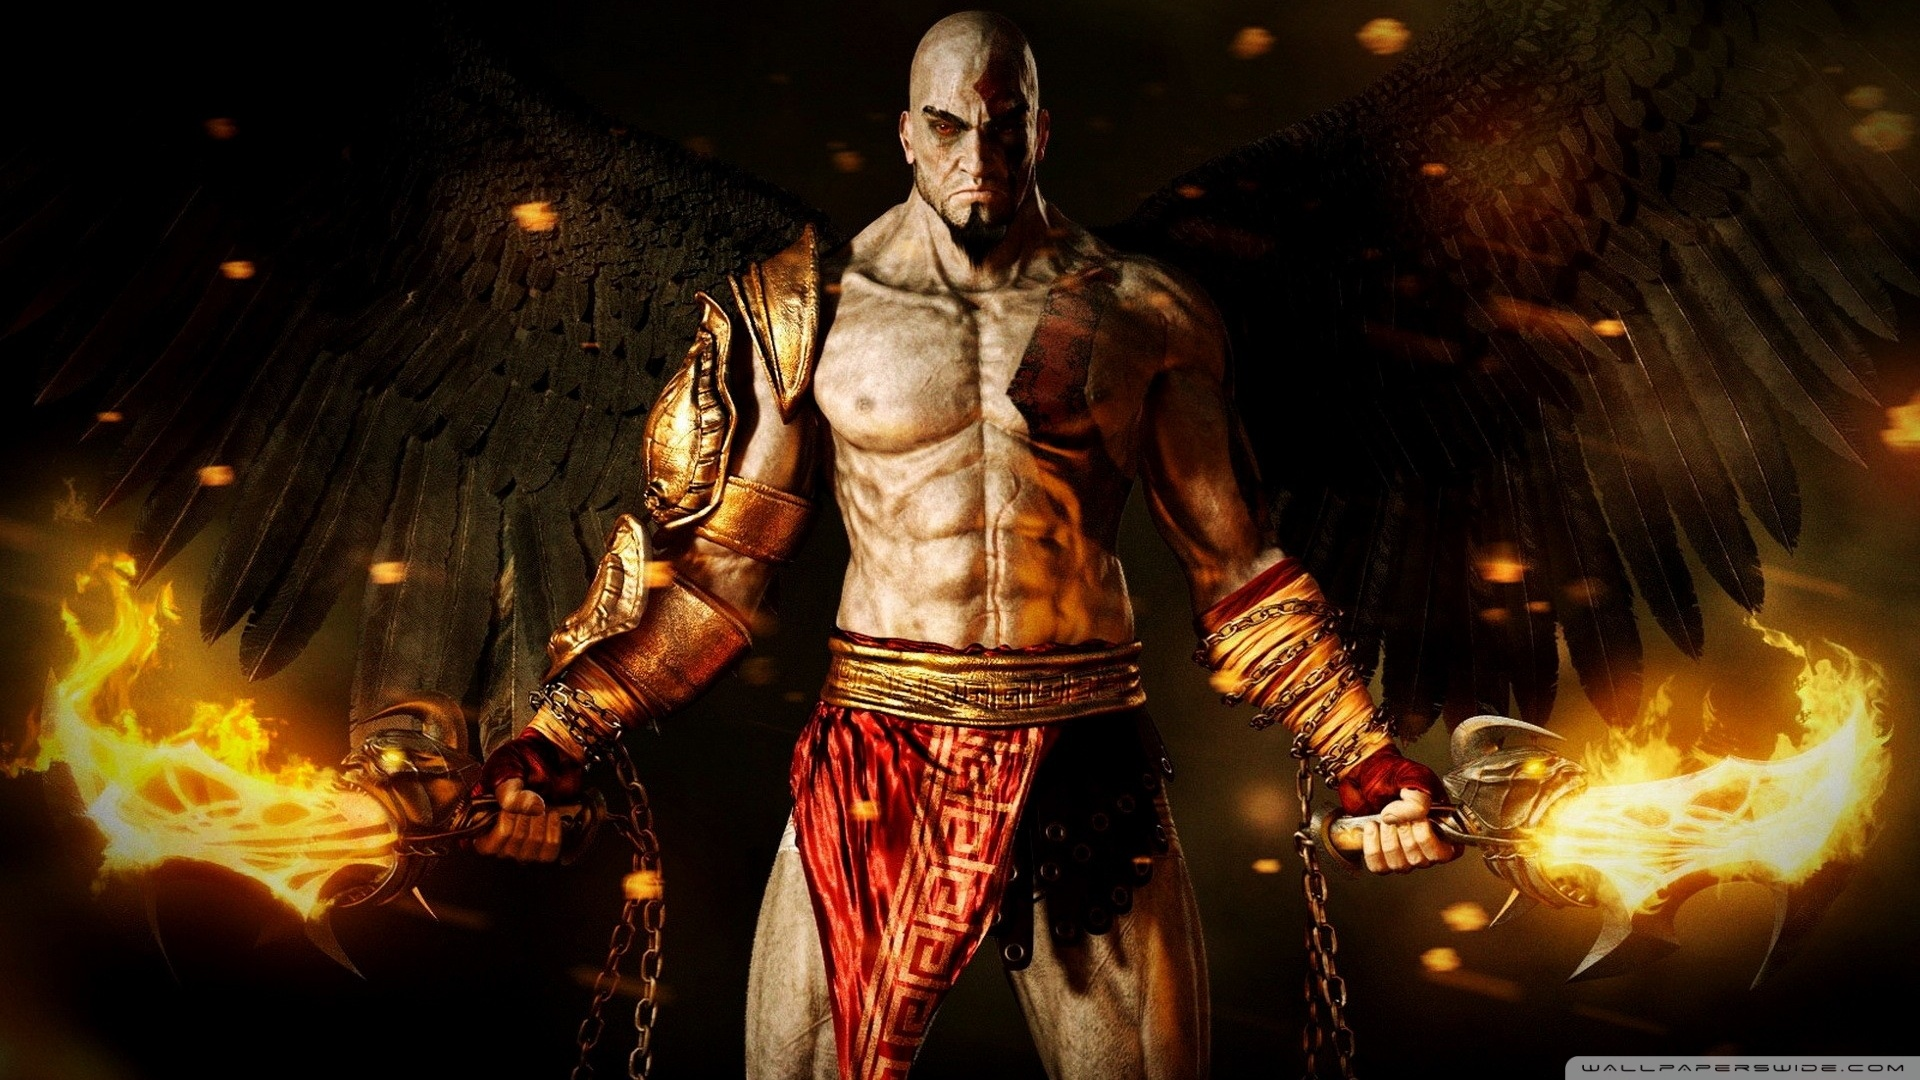 Full Hd 1080p God Of War 4 Wallpaper